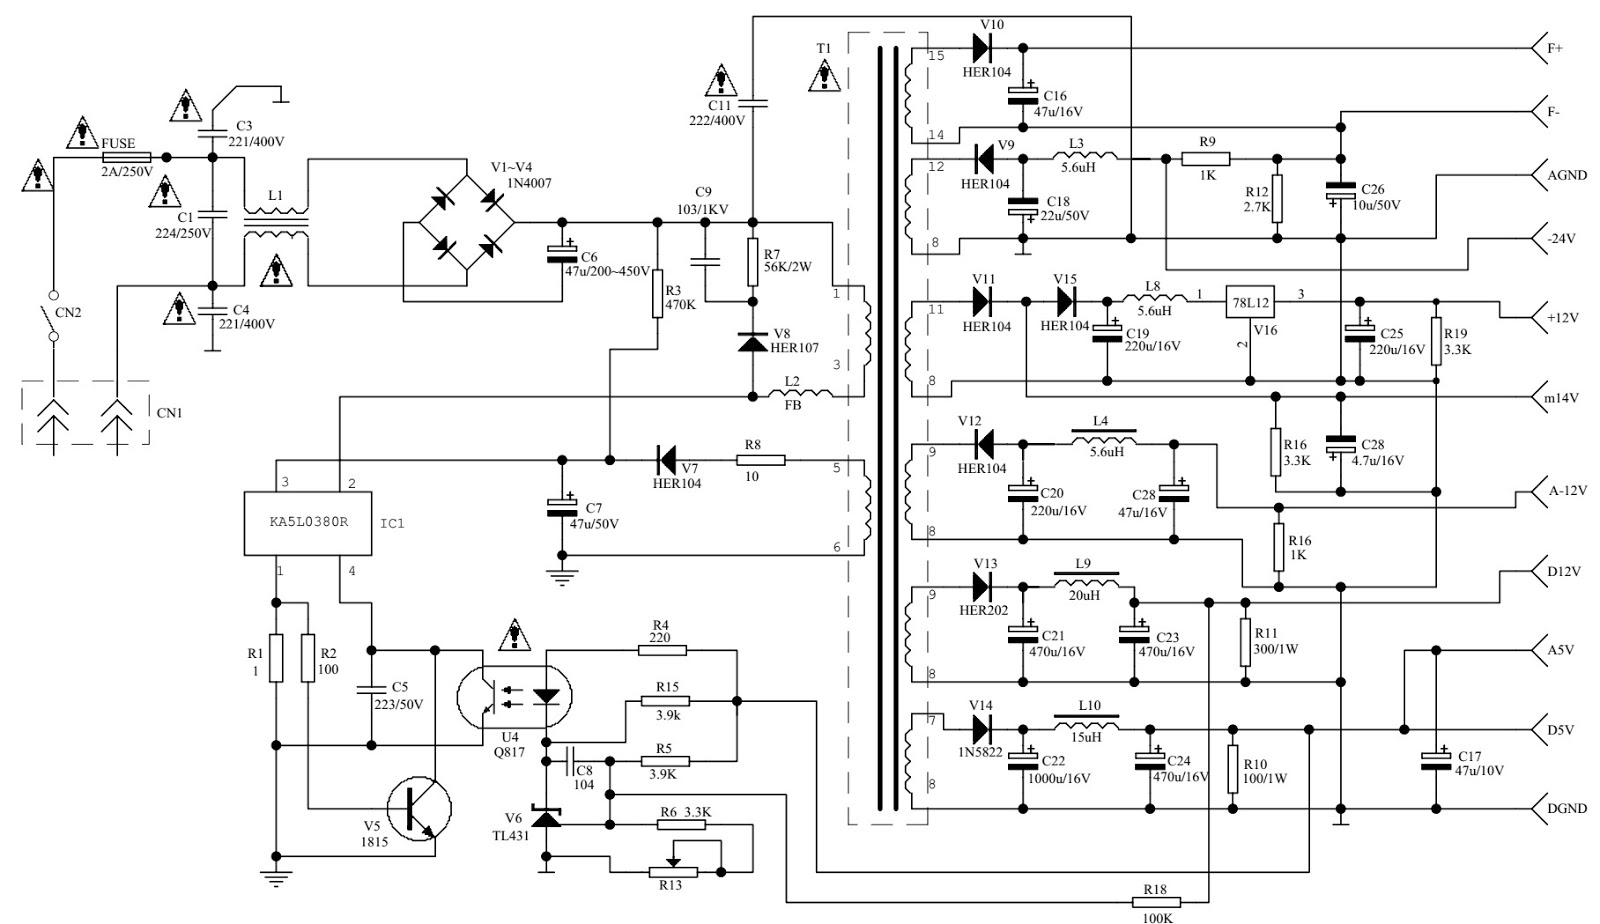 sony home theatre circuit diagram akai htc s 01t dvd home theater system [ 1600 x 924 Pixel ]